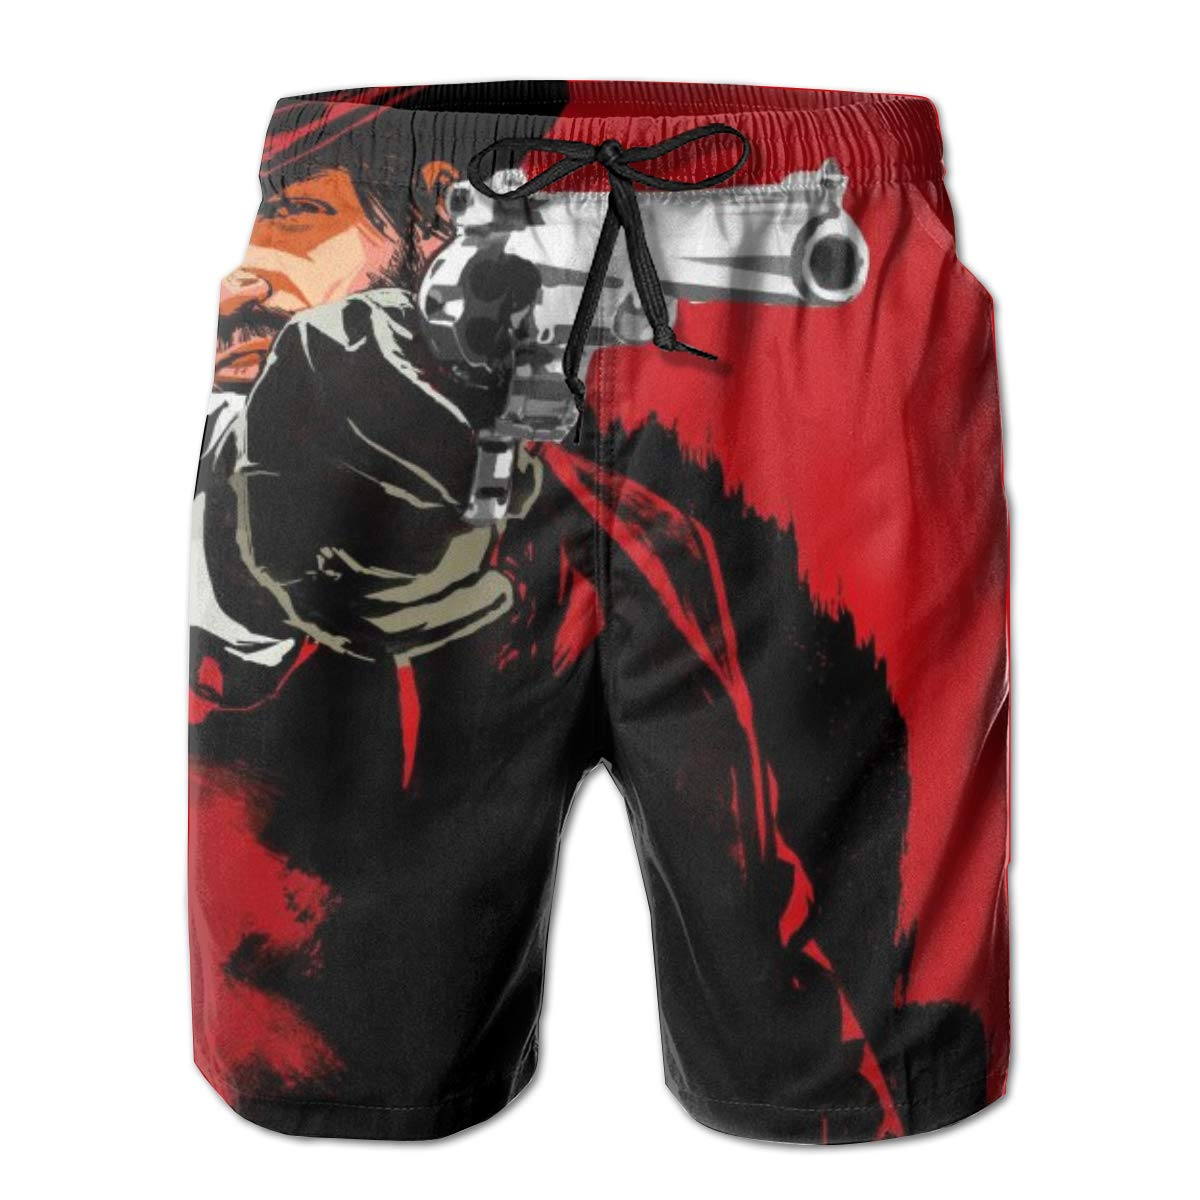 8Lucky Mens Swimming Trunks Quick Dry Beach Board Shorts Mesh Lining Dead-Redemption Print Casual Drawstring Pants